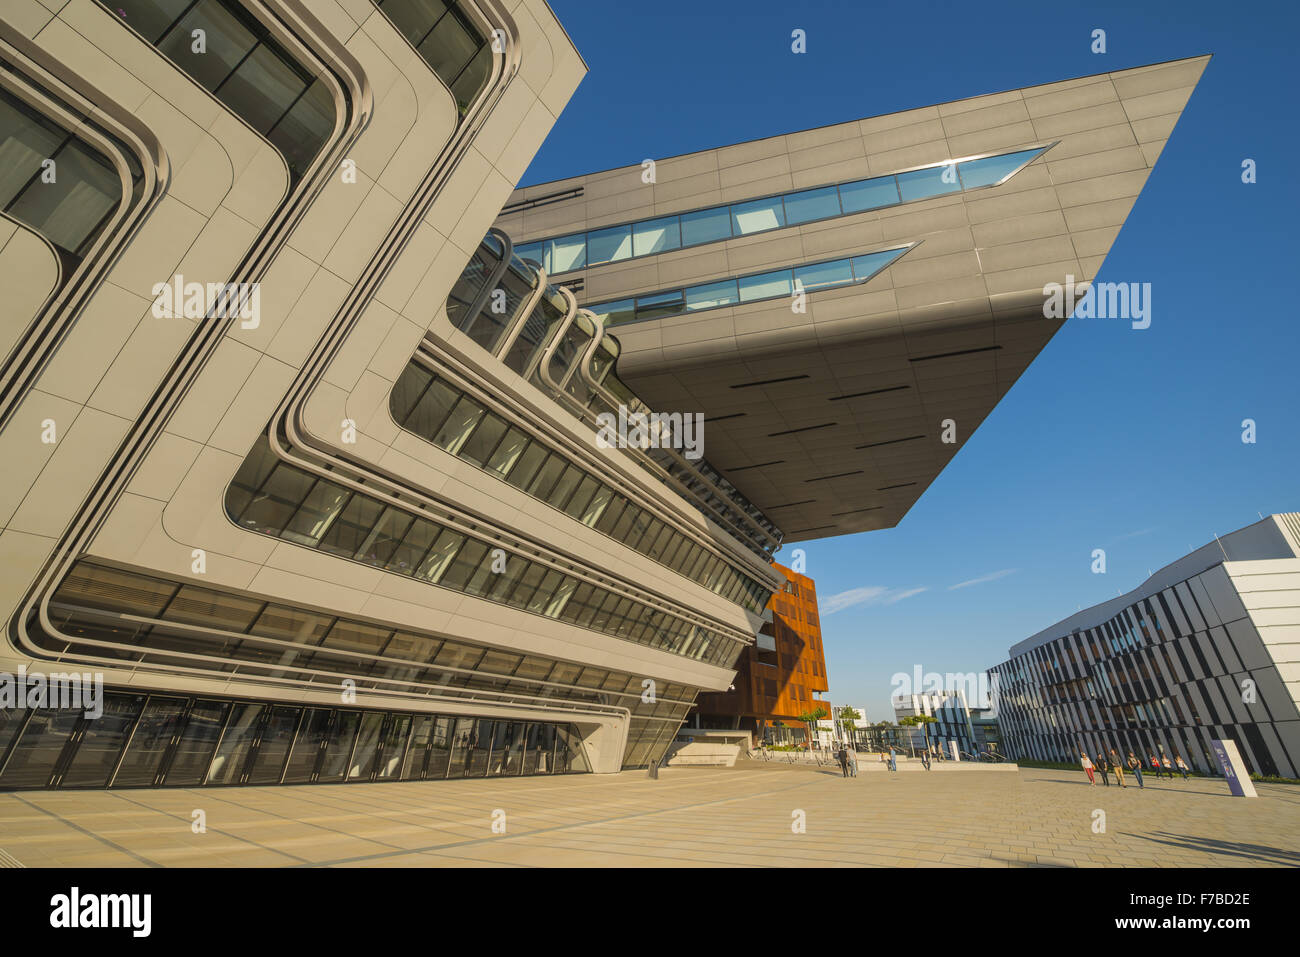 WU Campus Vienna, Vienna University of Economics and Business, LC, Library and Learning Center, Zaha Hadid, Austria, - Stock Image